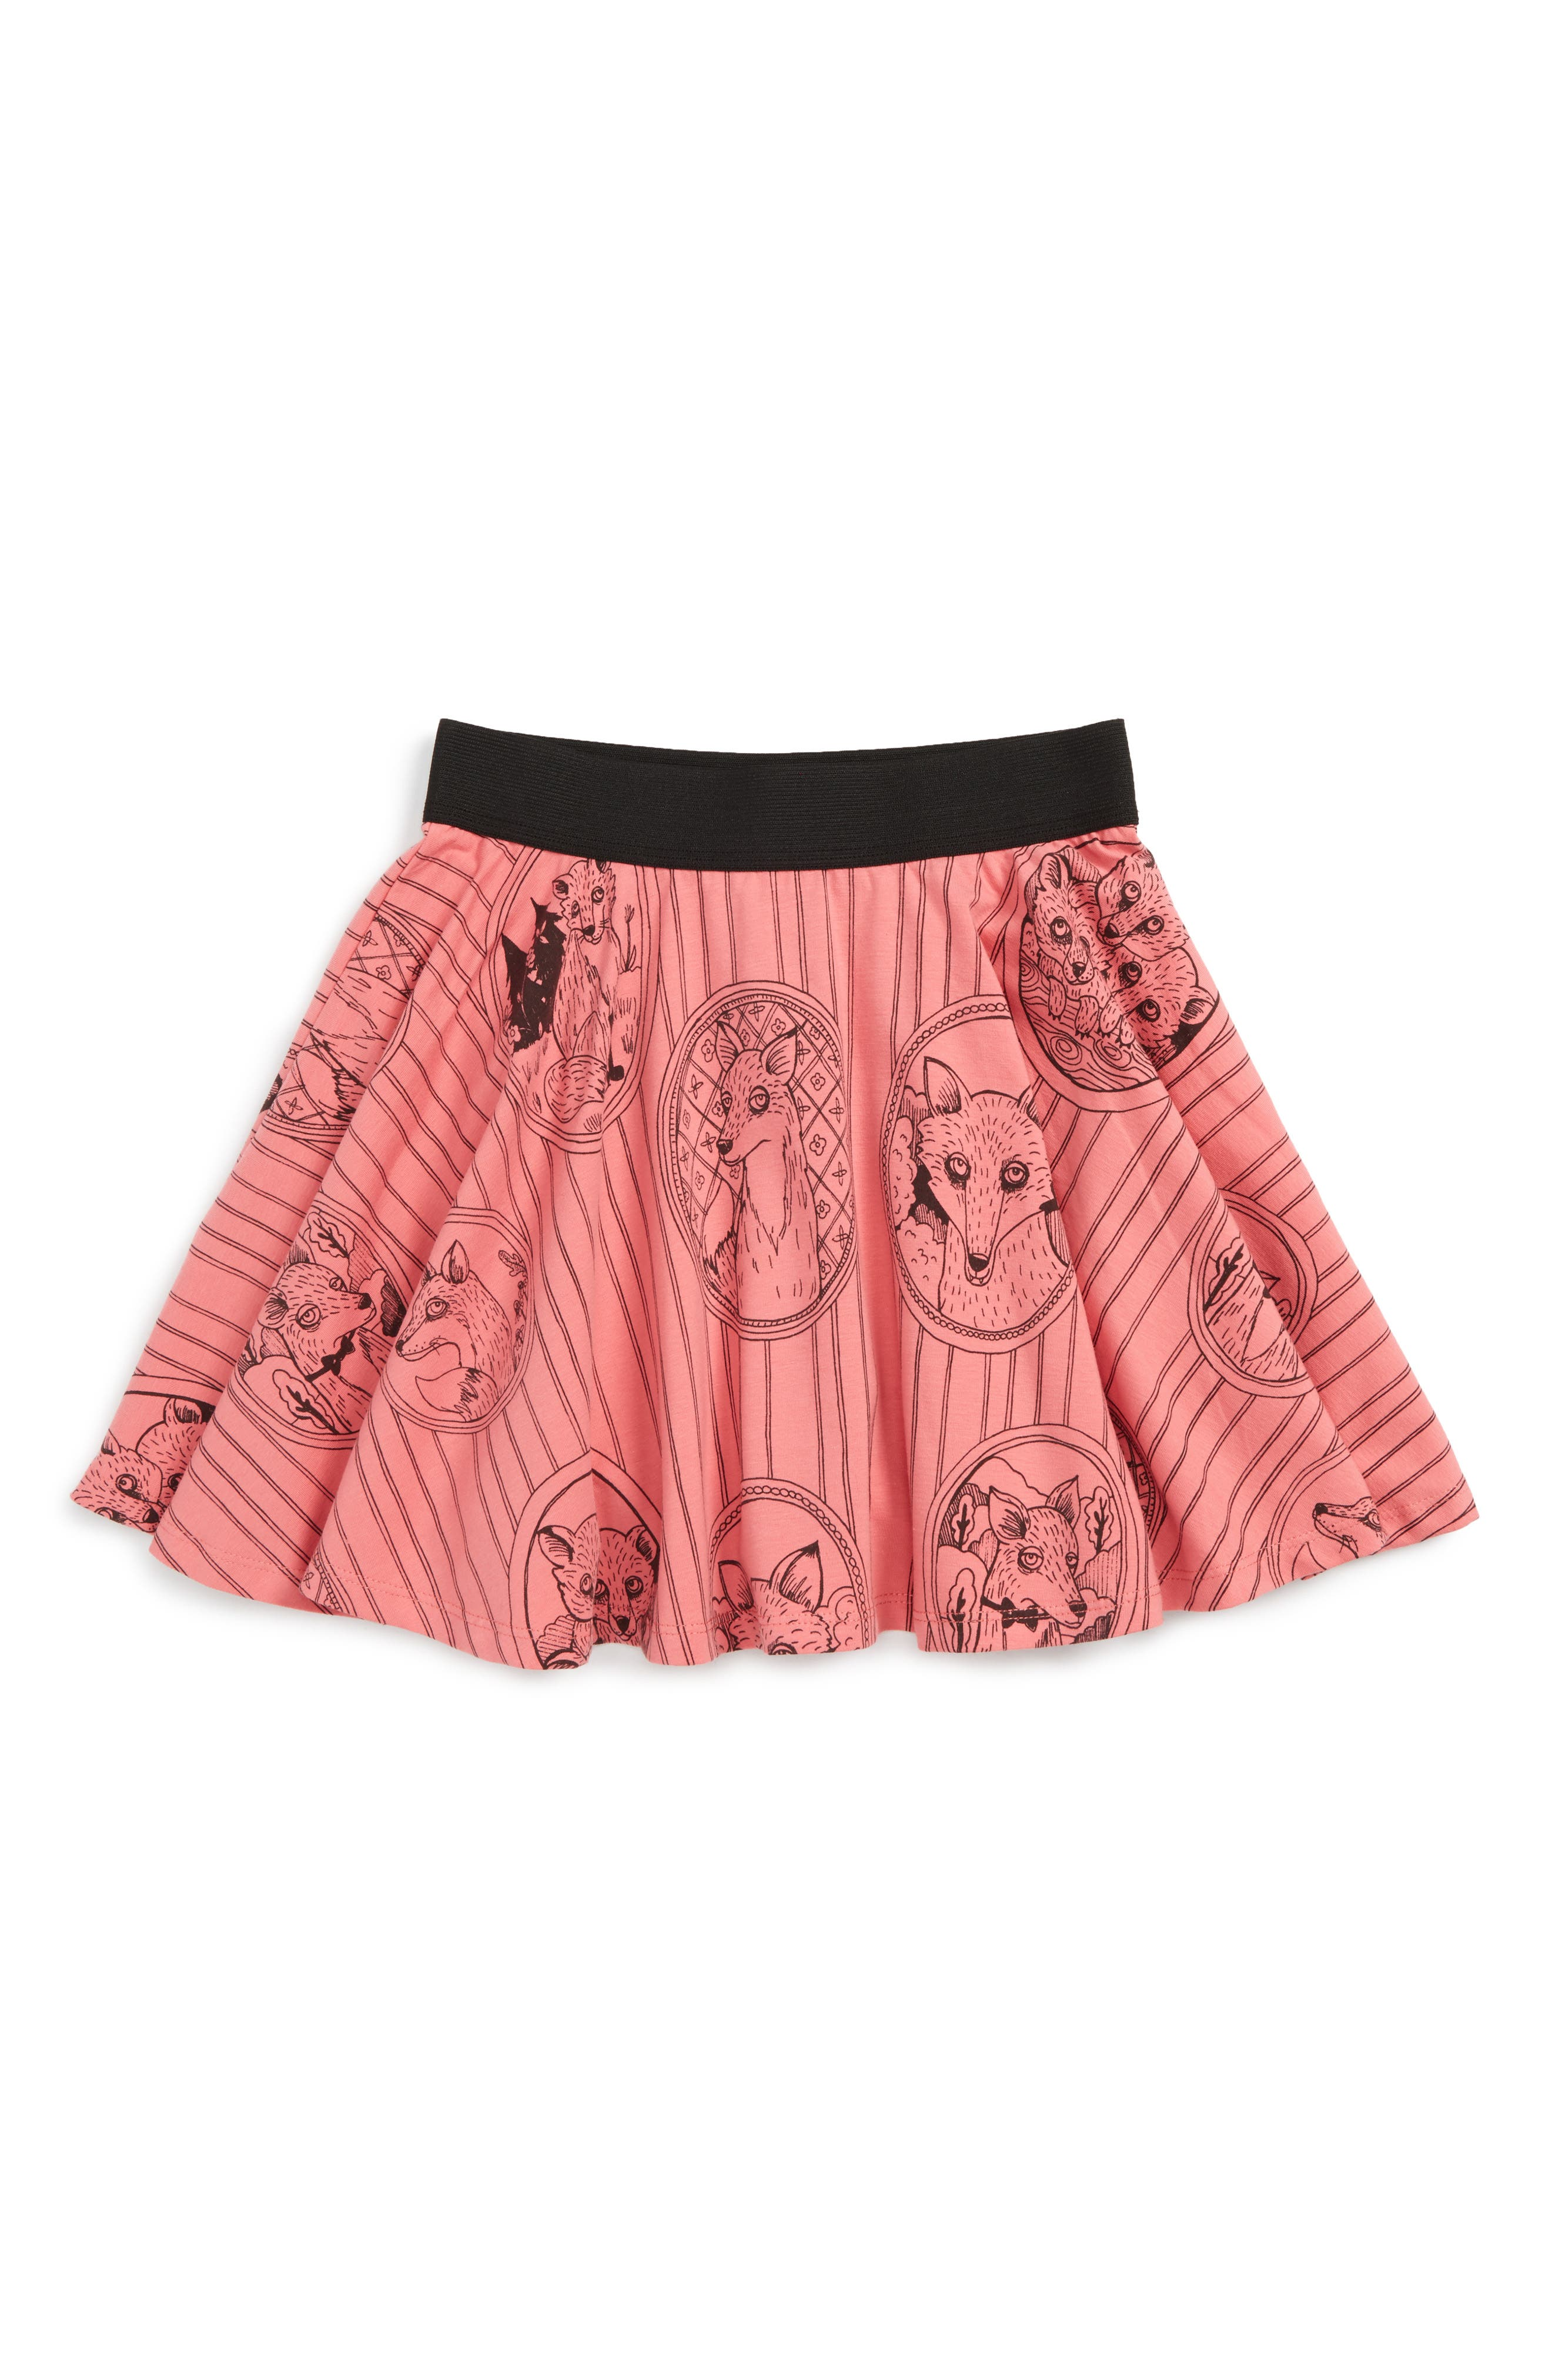 Fox Family Skirt,                             Main thumbnail 1, color,                             650